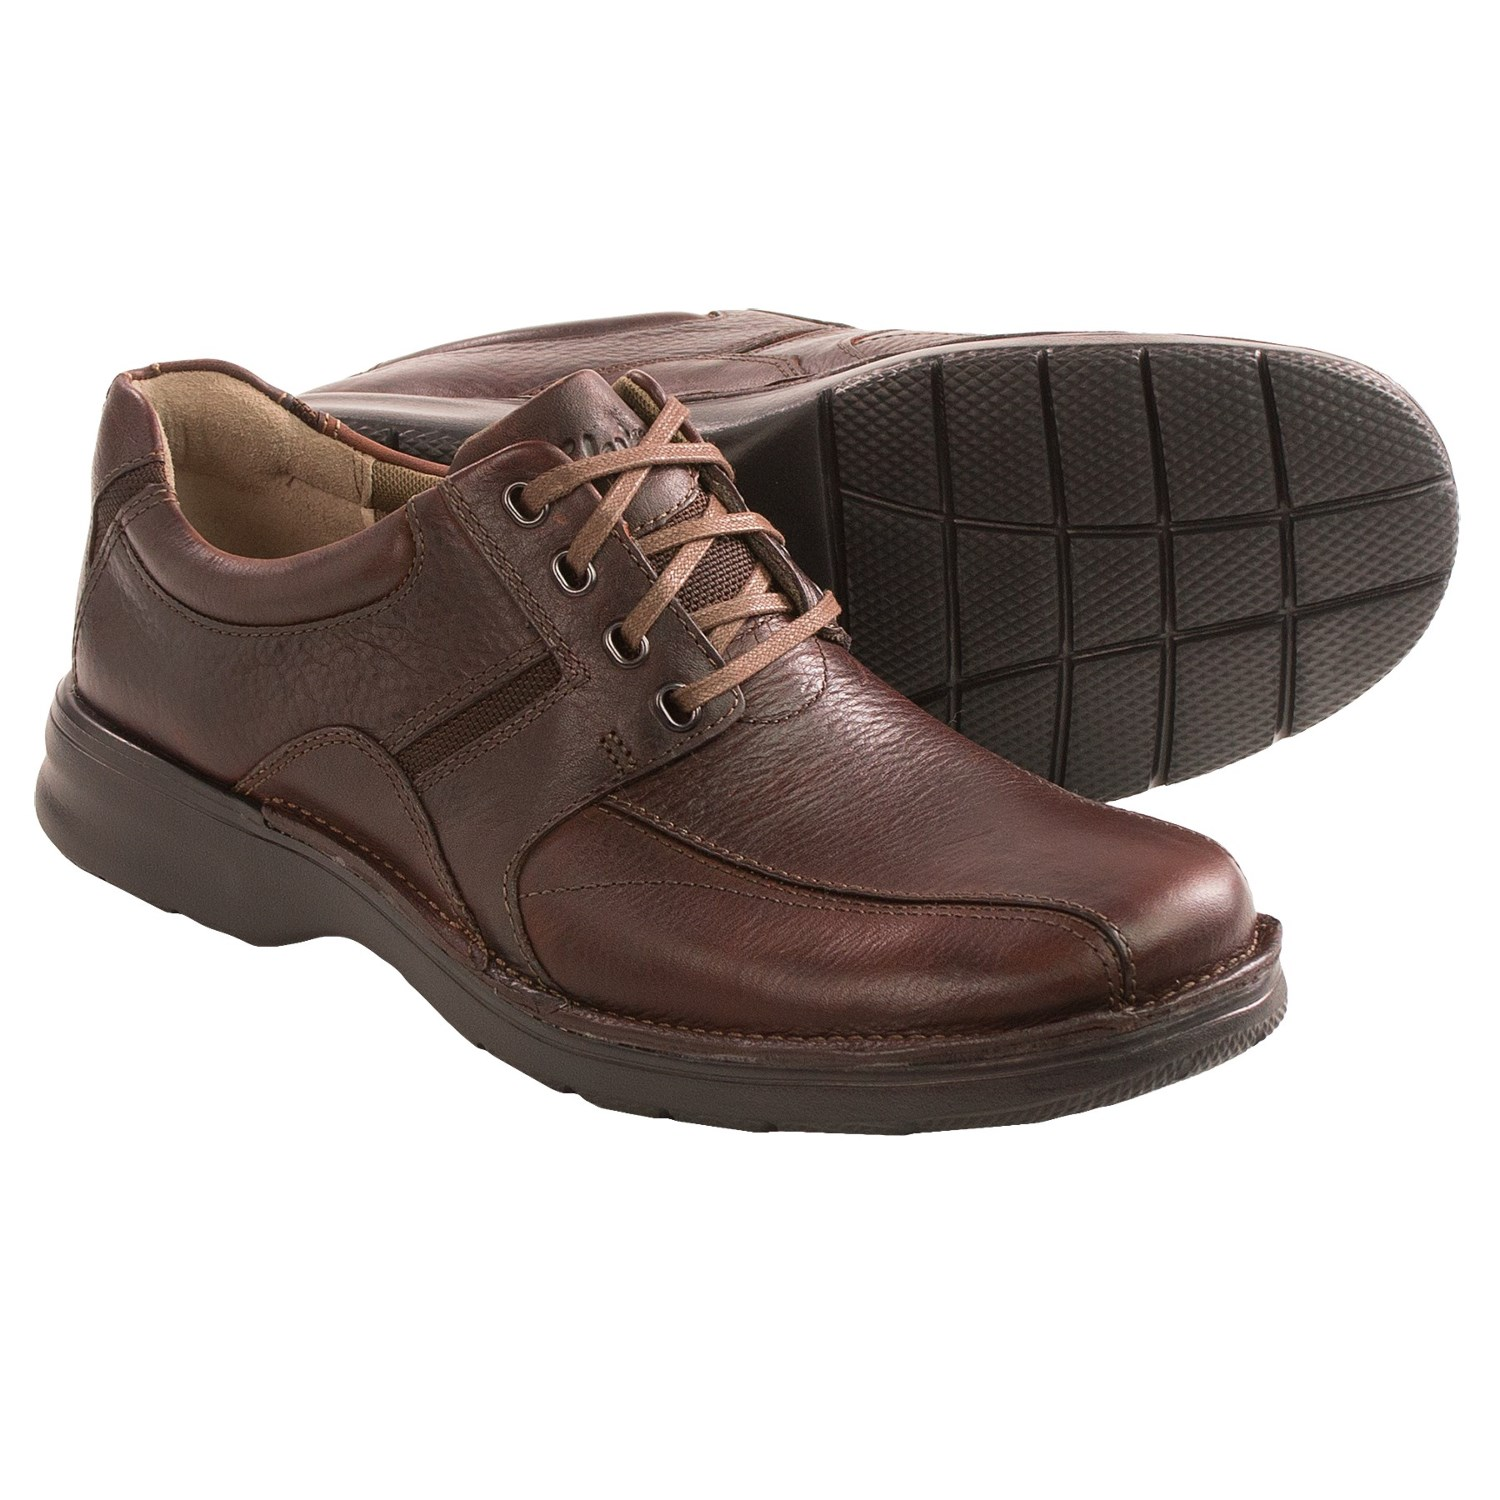 Clarks Shoes Northfield